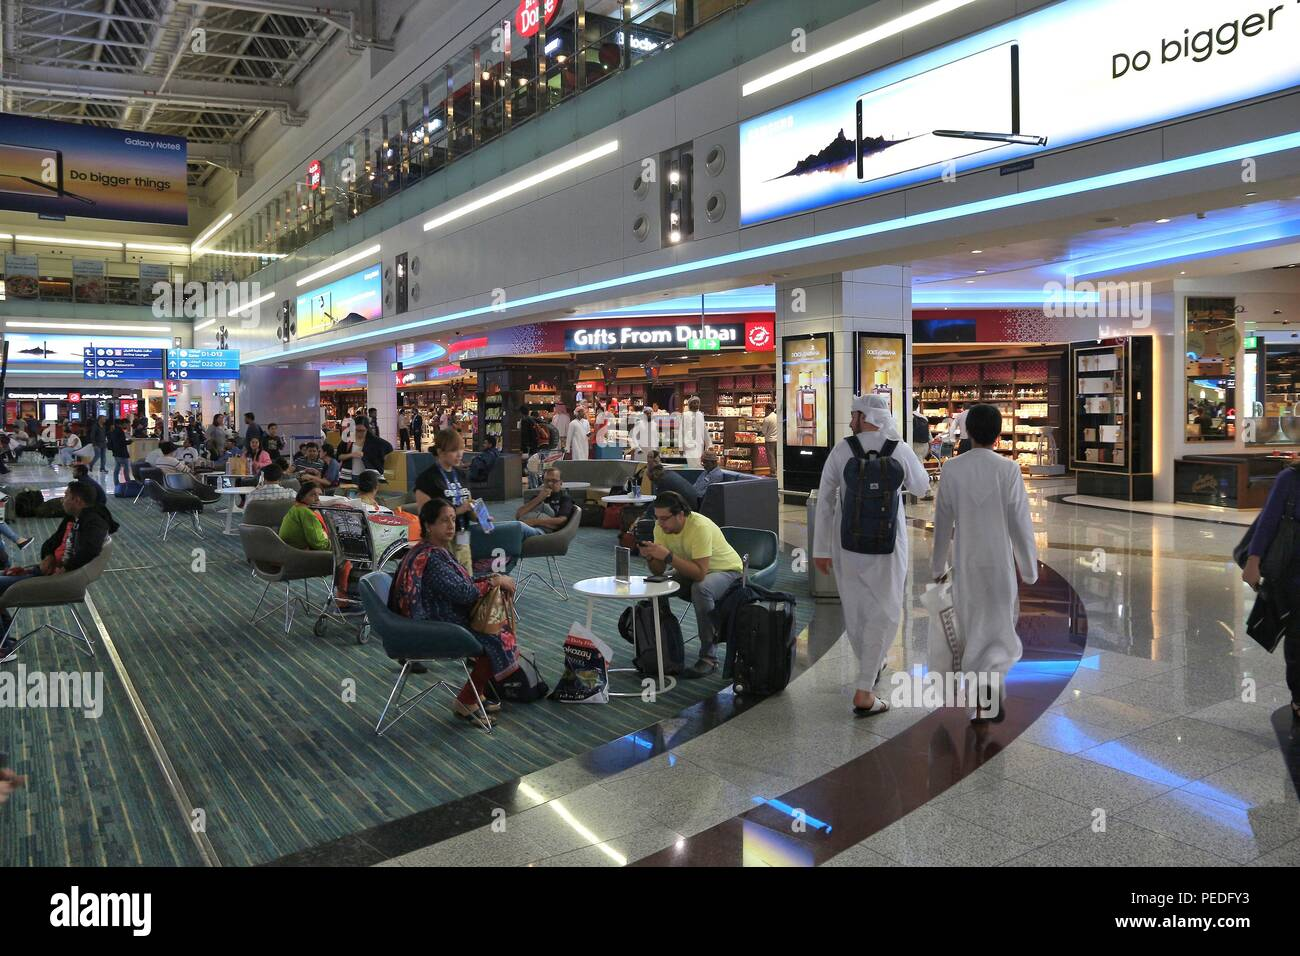 DUBAI, UAE - NOVEMBER 23, 2017: Passengers wait at Dubai International Airport, United Arab Emirates. It is the 3rd busiest airport in the world with  Stock Photo